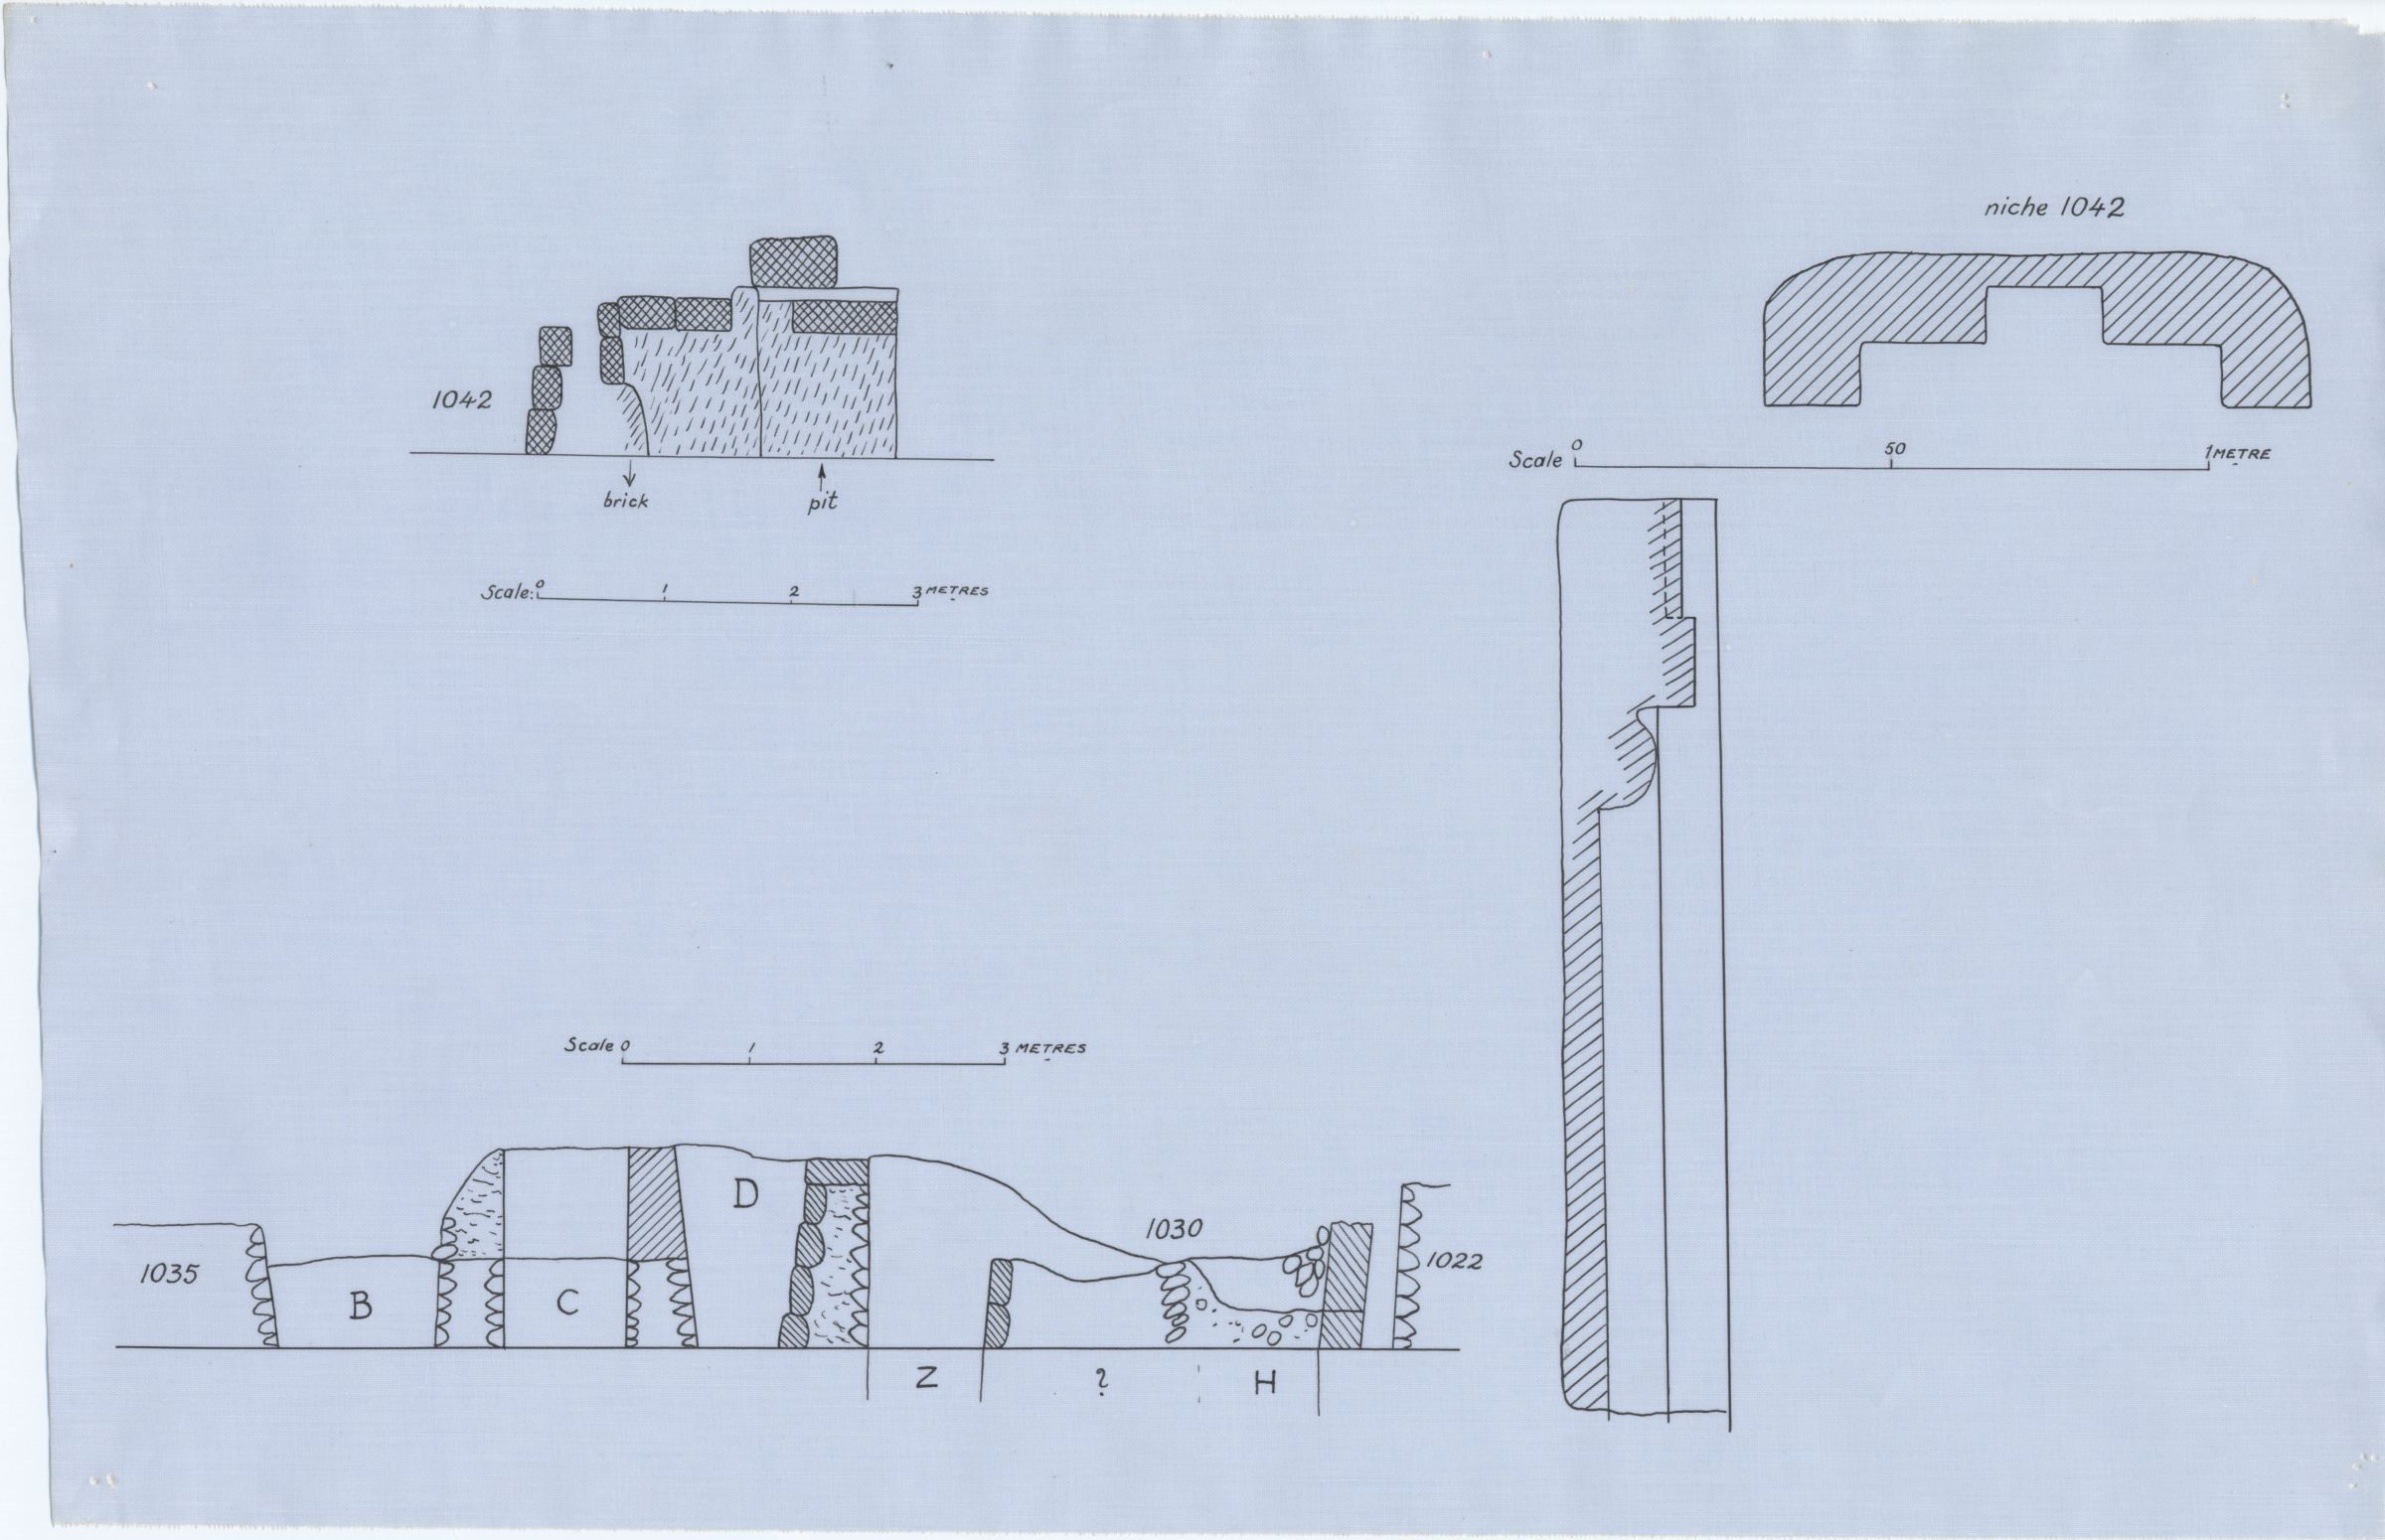 Maps and plans: Plan and section of G 1042 niche & Sections of G 1022, G 1030, G 1035, and G 1042